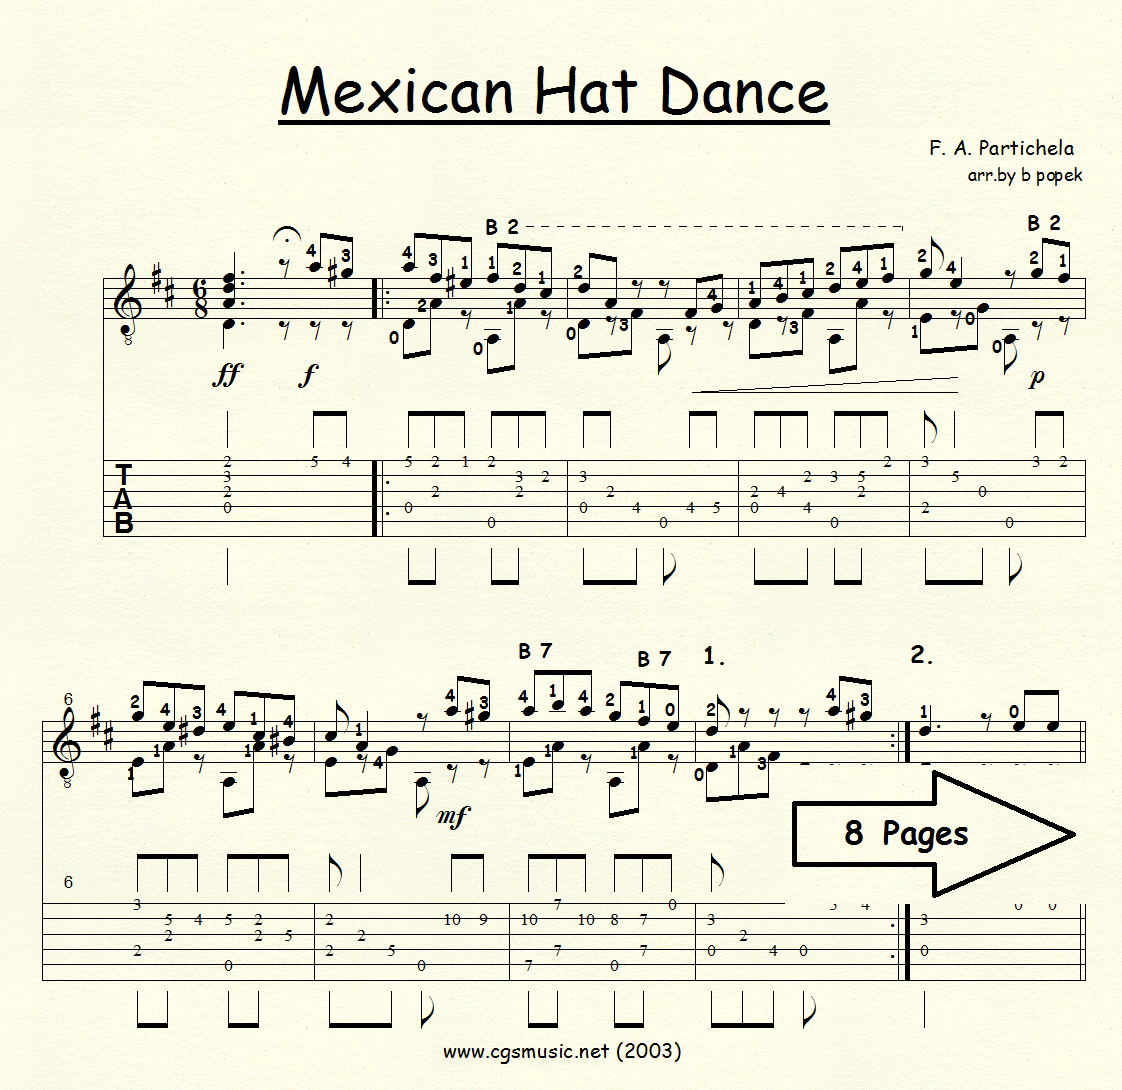 Mexican Hat Dance (Partichela) for Classical Guitar in Tablature